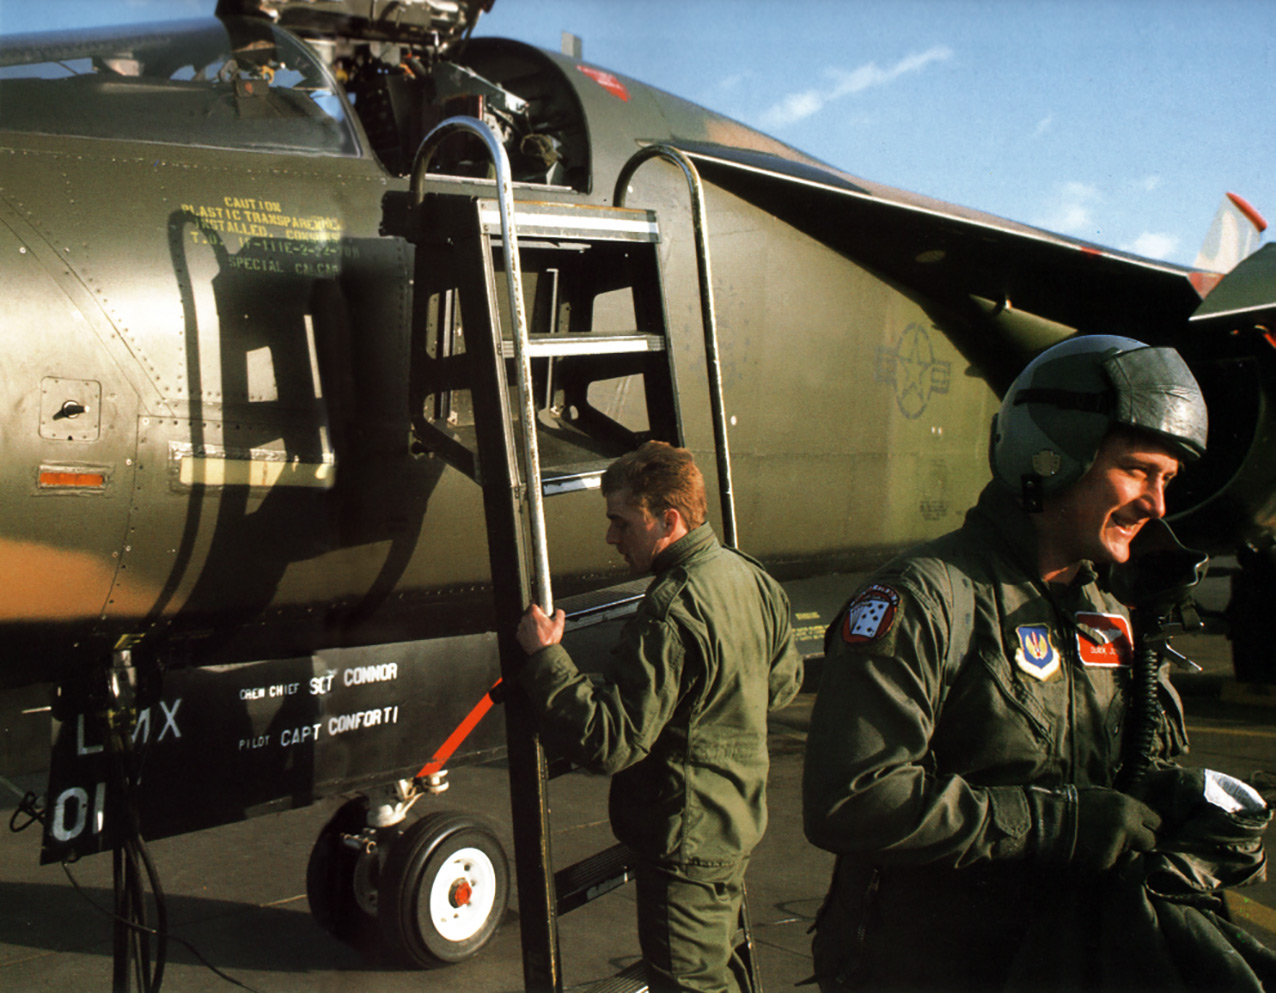 Captain Derek Jones leaves his F-111E after a mission in their F-111E at RAF Upper Heyford, 1990